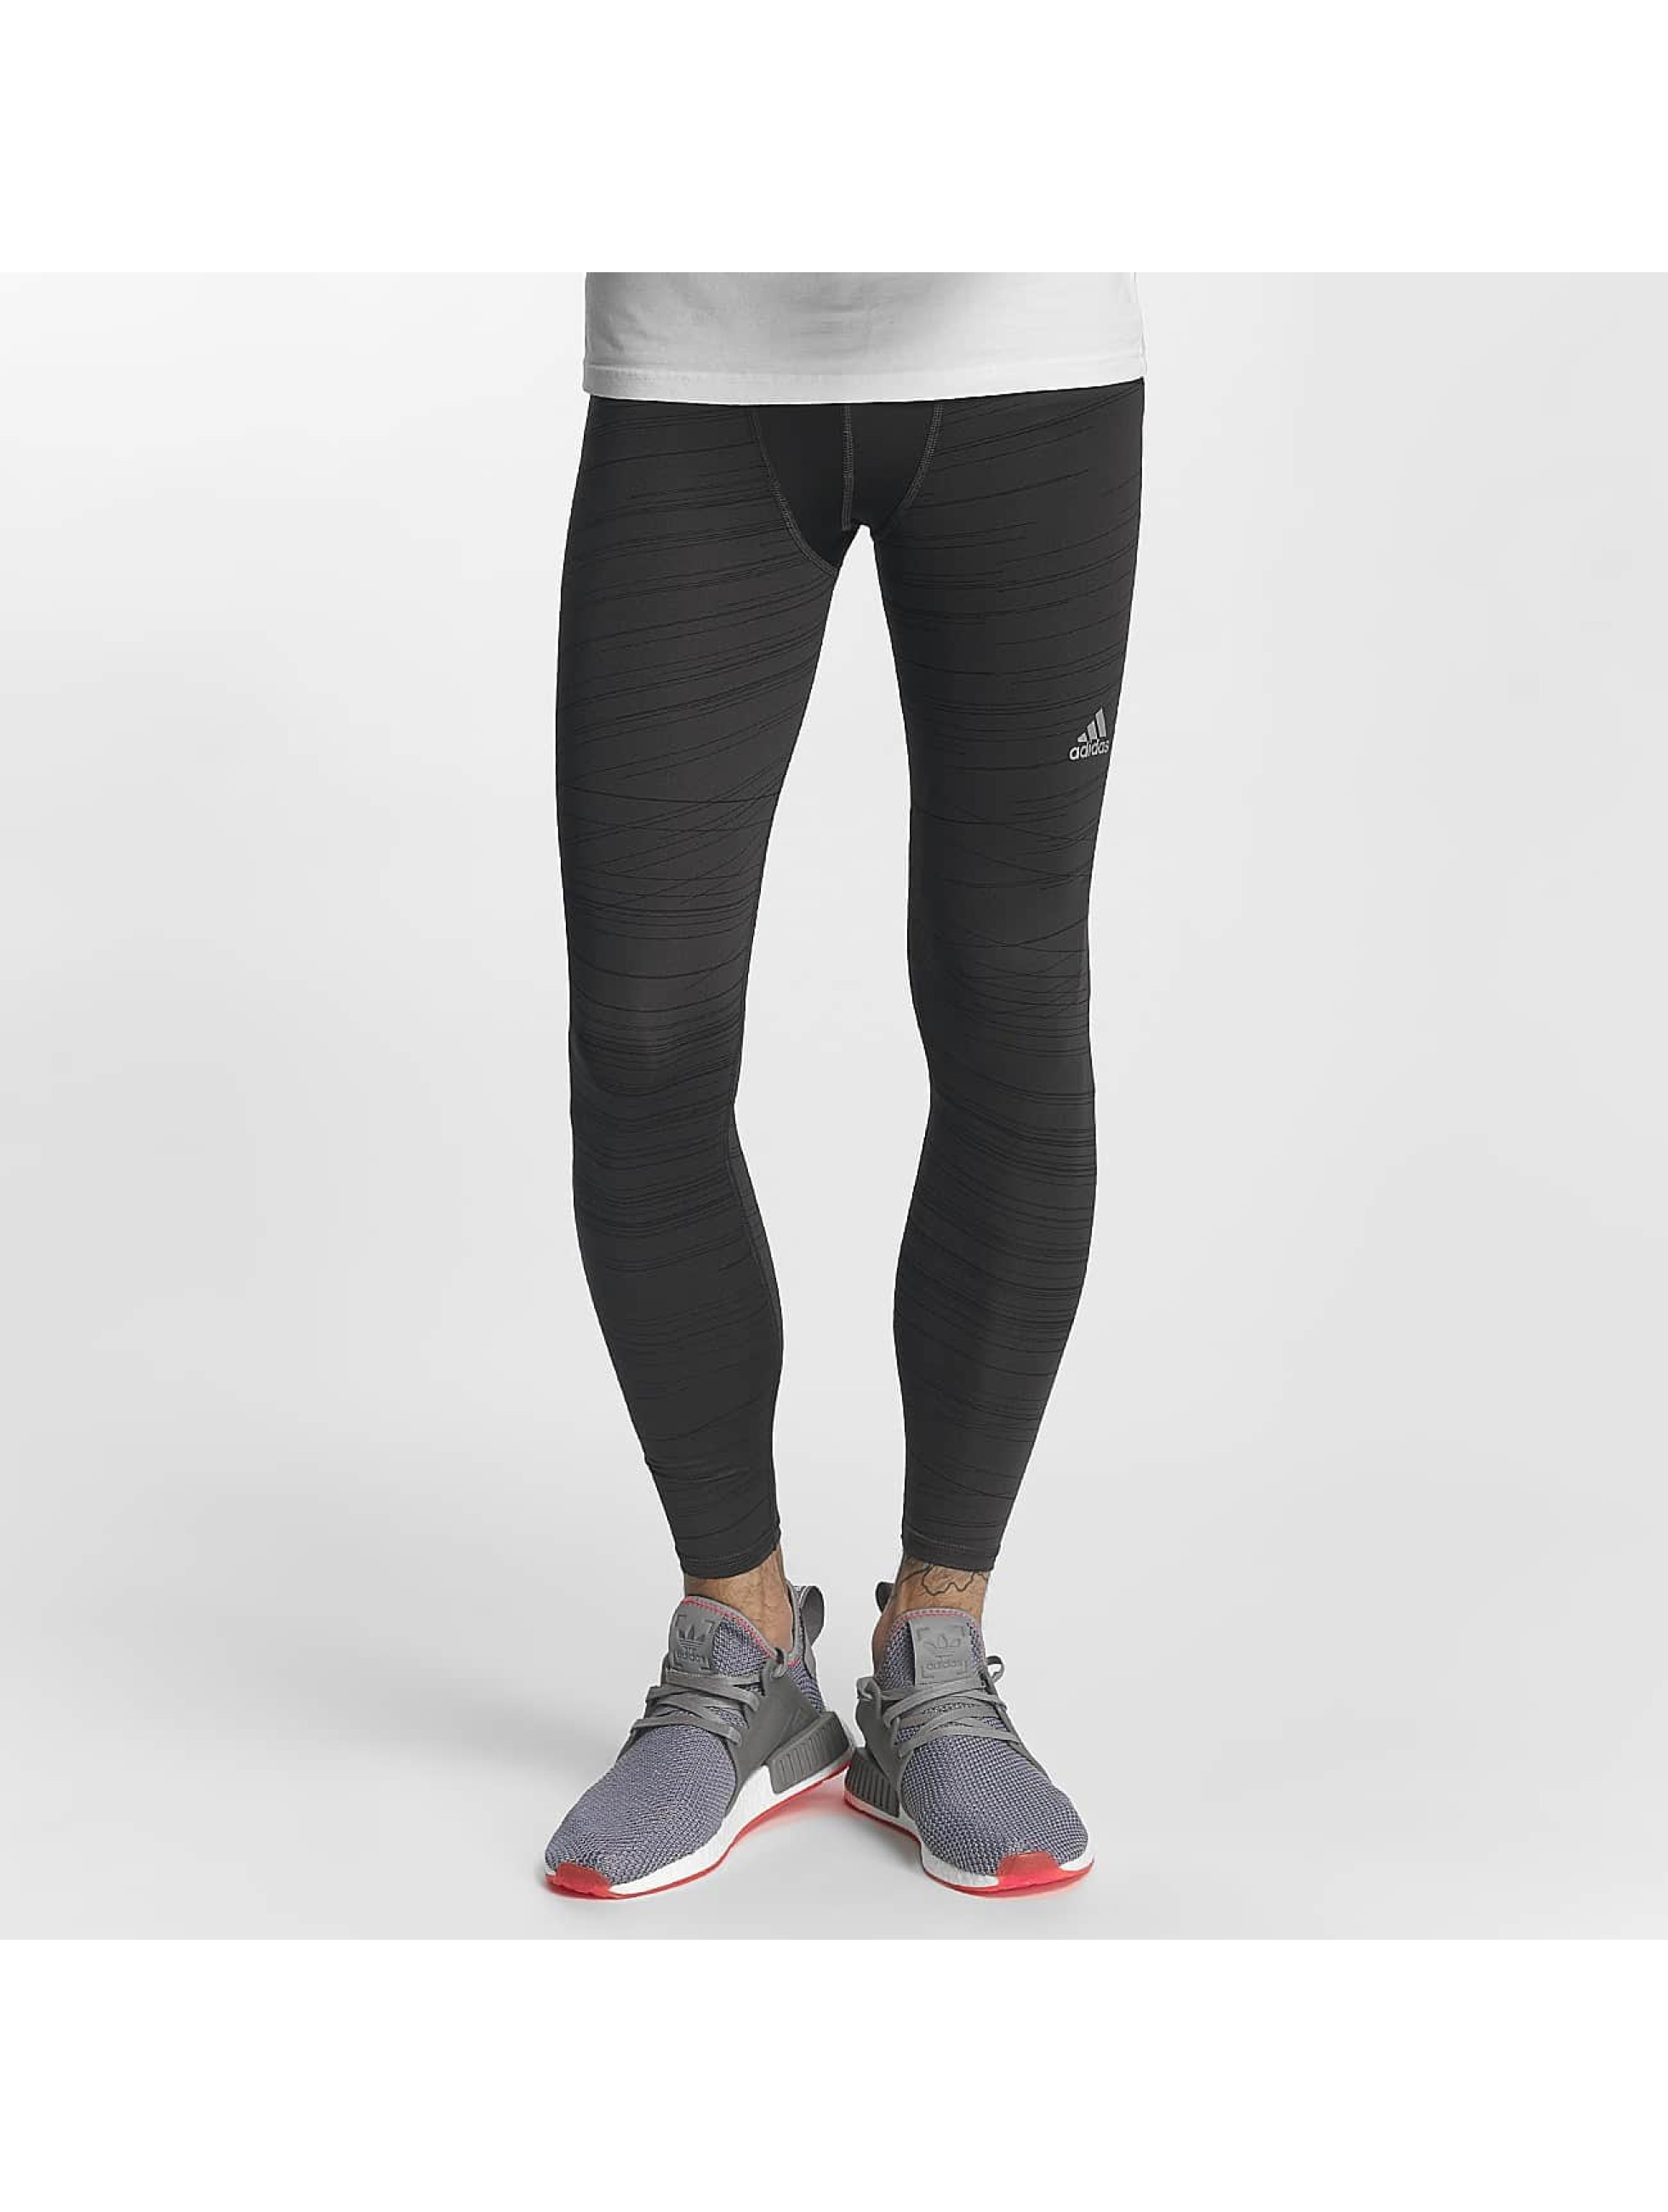 adidas Performance Männer Legging Techfit Long Print Tights in schwarz